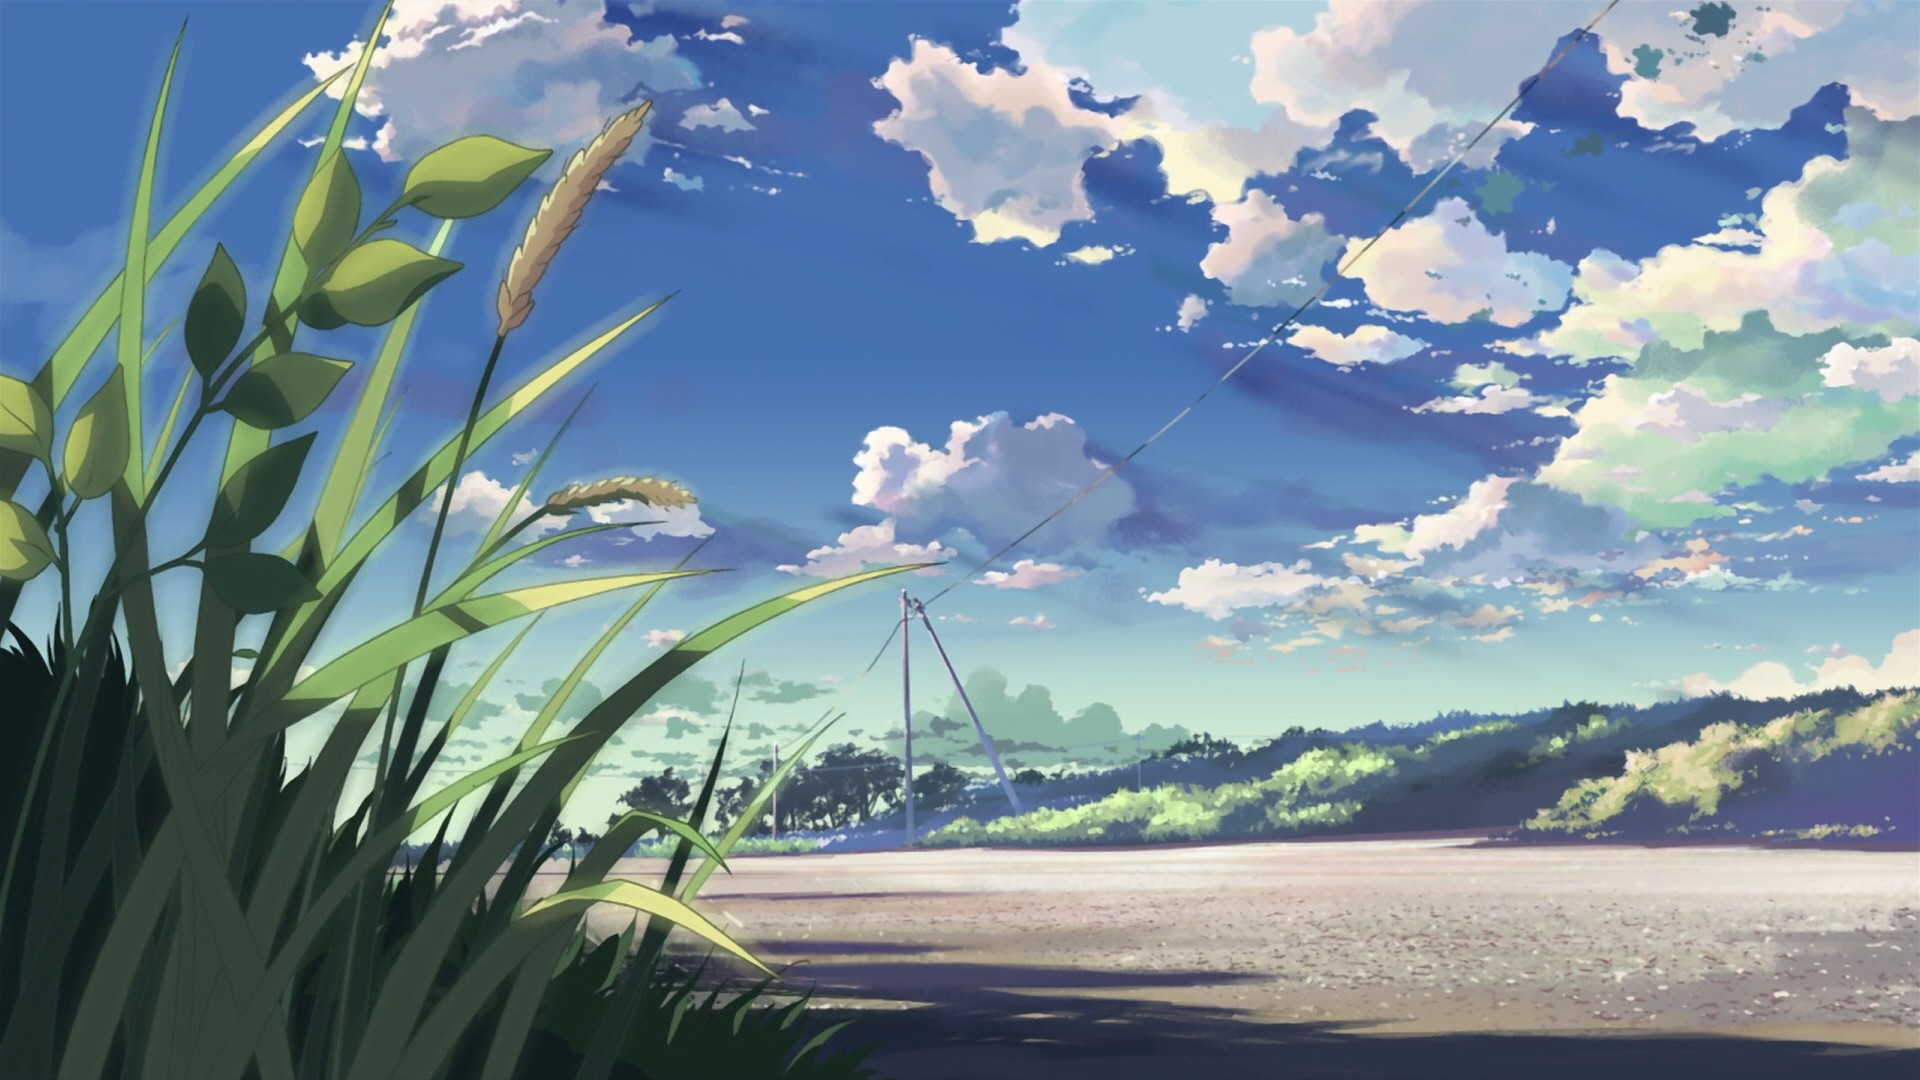 Res: 1920x1080, Anime Landscape Wallpaper HD.